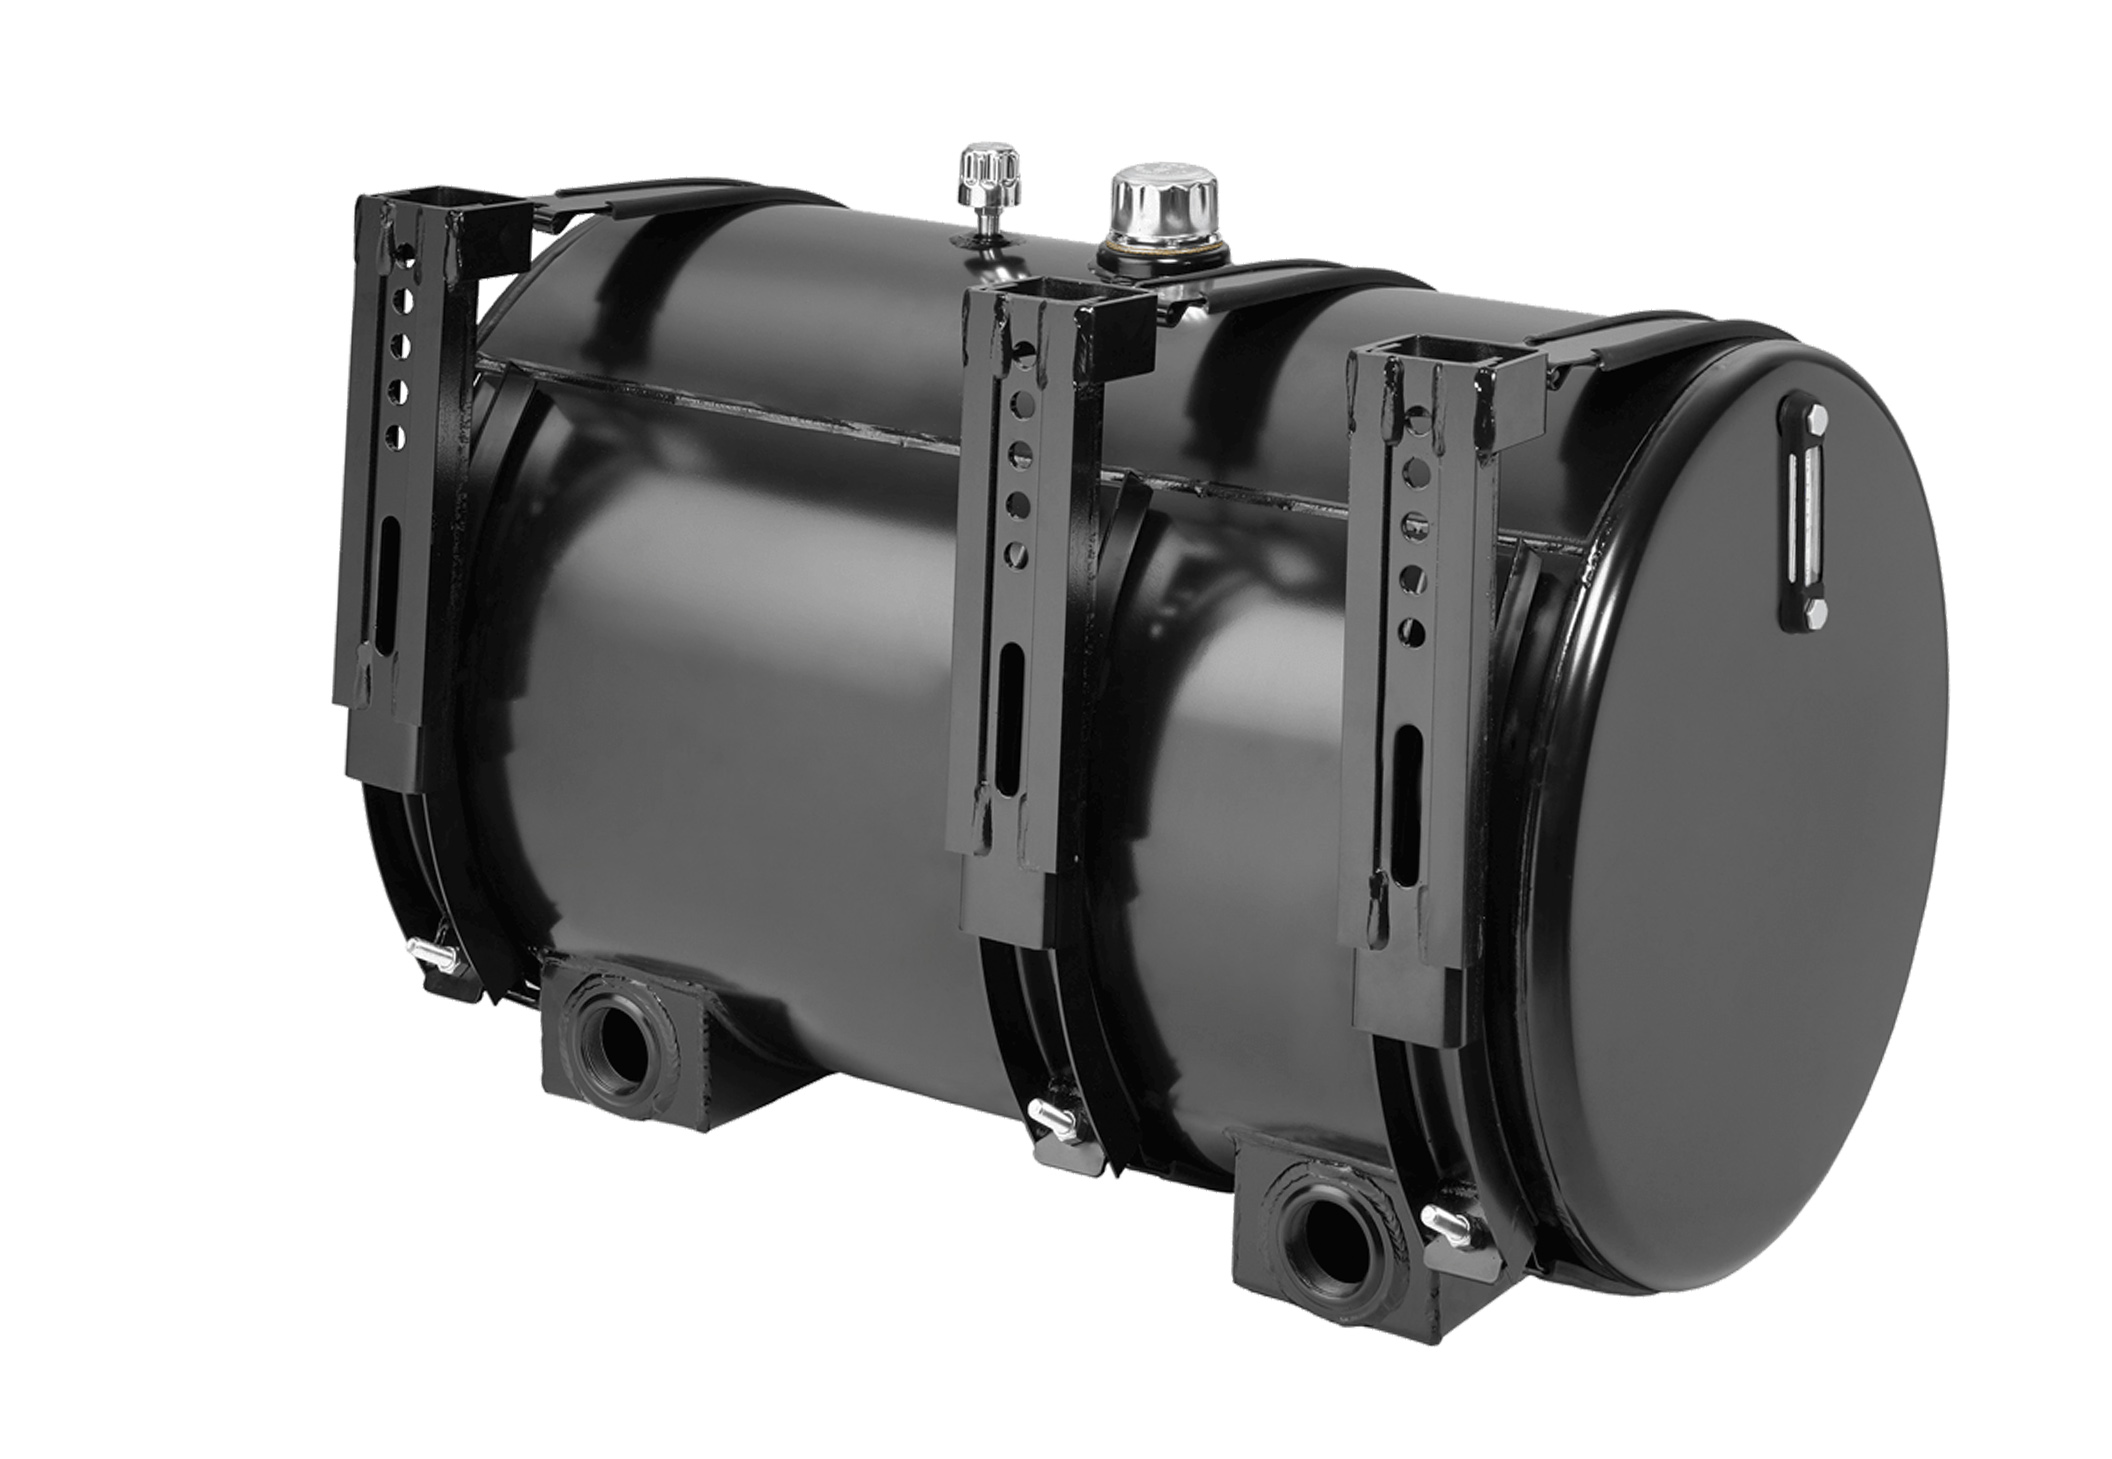 Steel Saddlemount - 75 Gallon Hydraulic Tanks